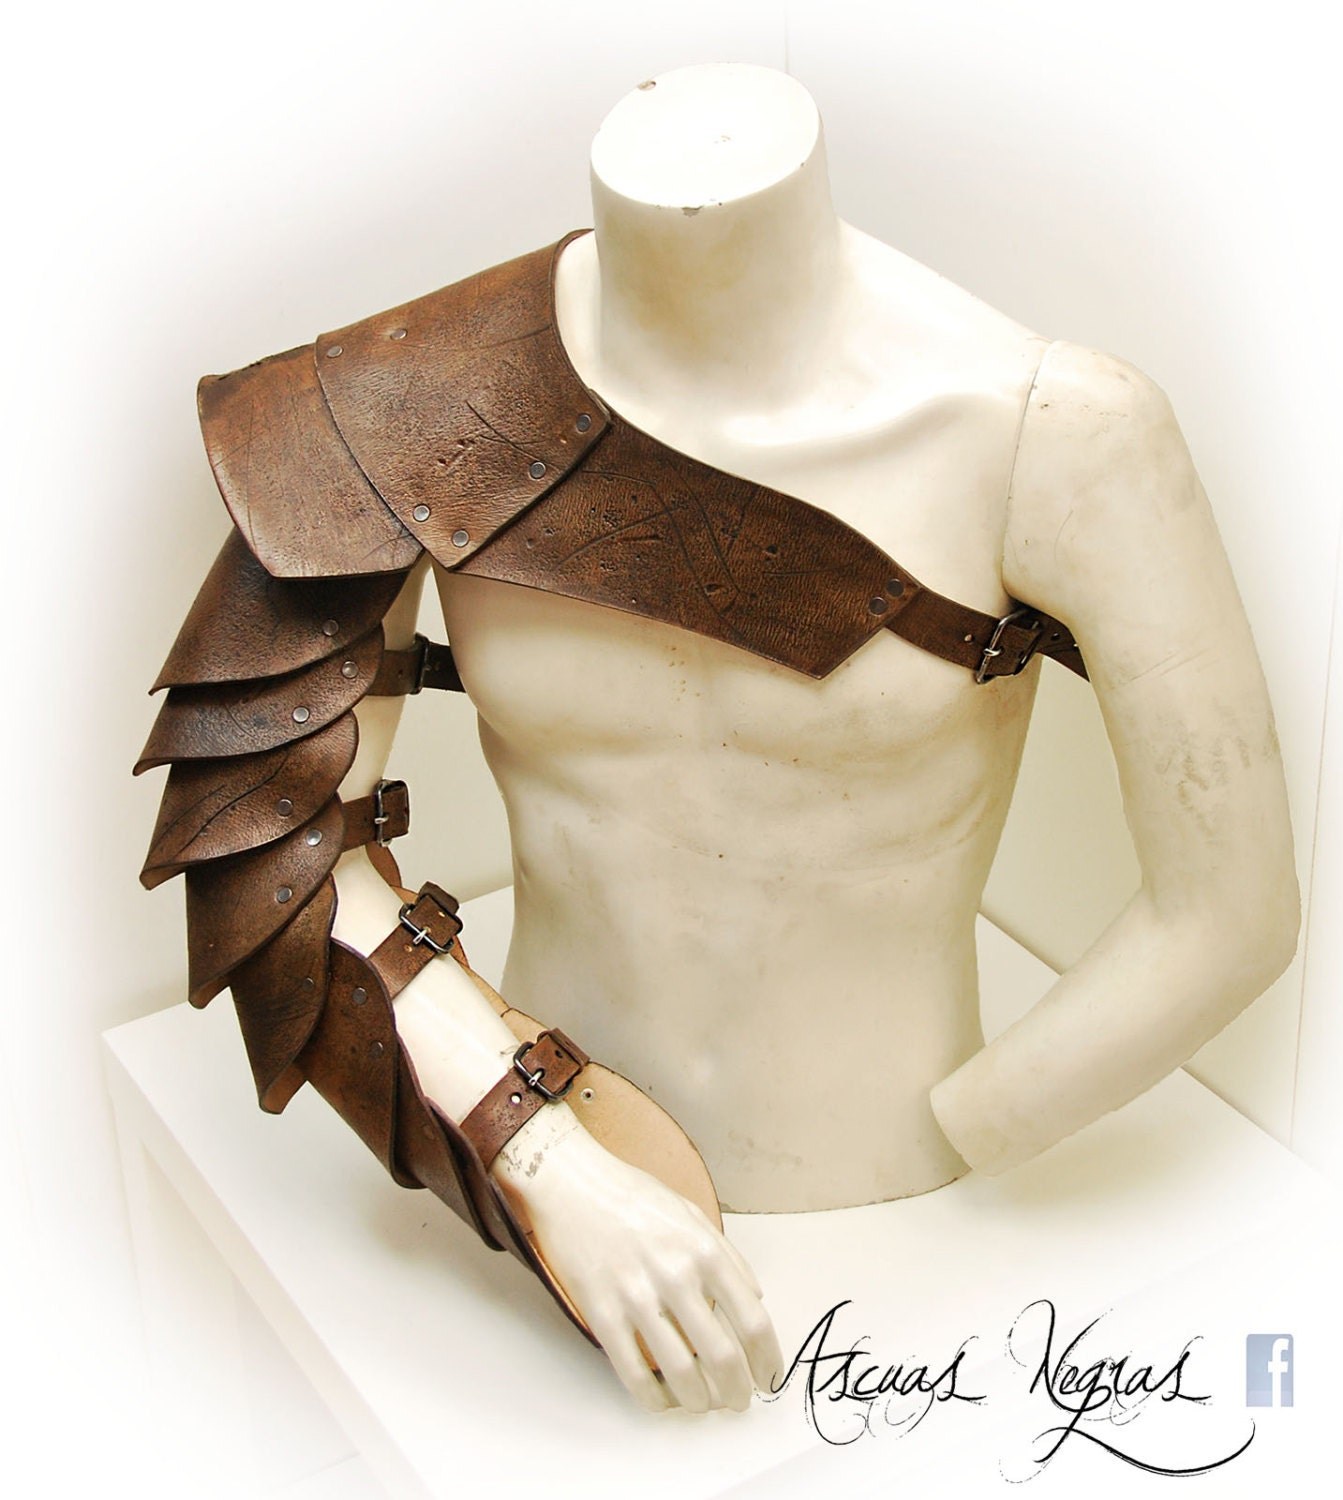 Gladiator Leather Shoulder Armor. Leather Manica. By